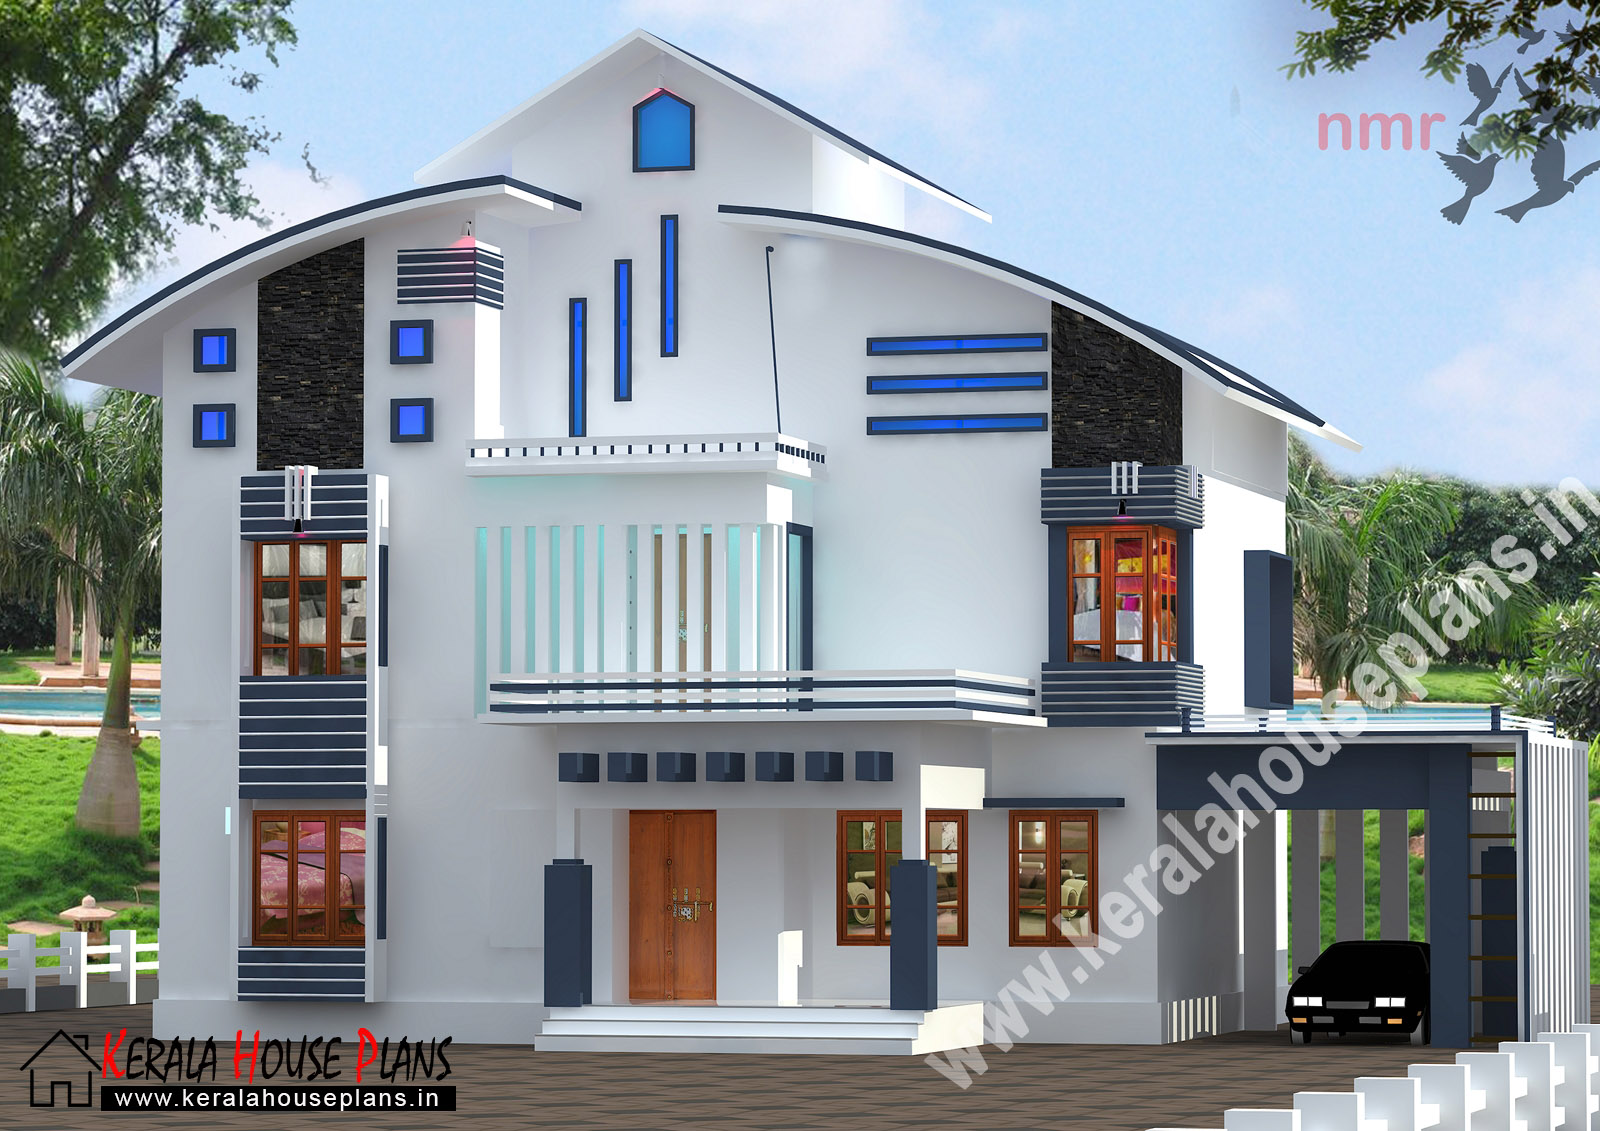 Kerala House Plans and Designs kerala house plan slope roof design